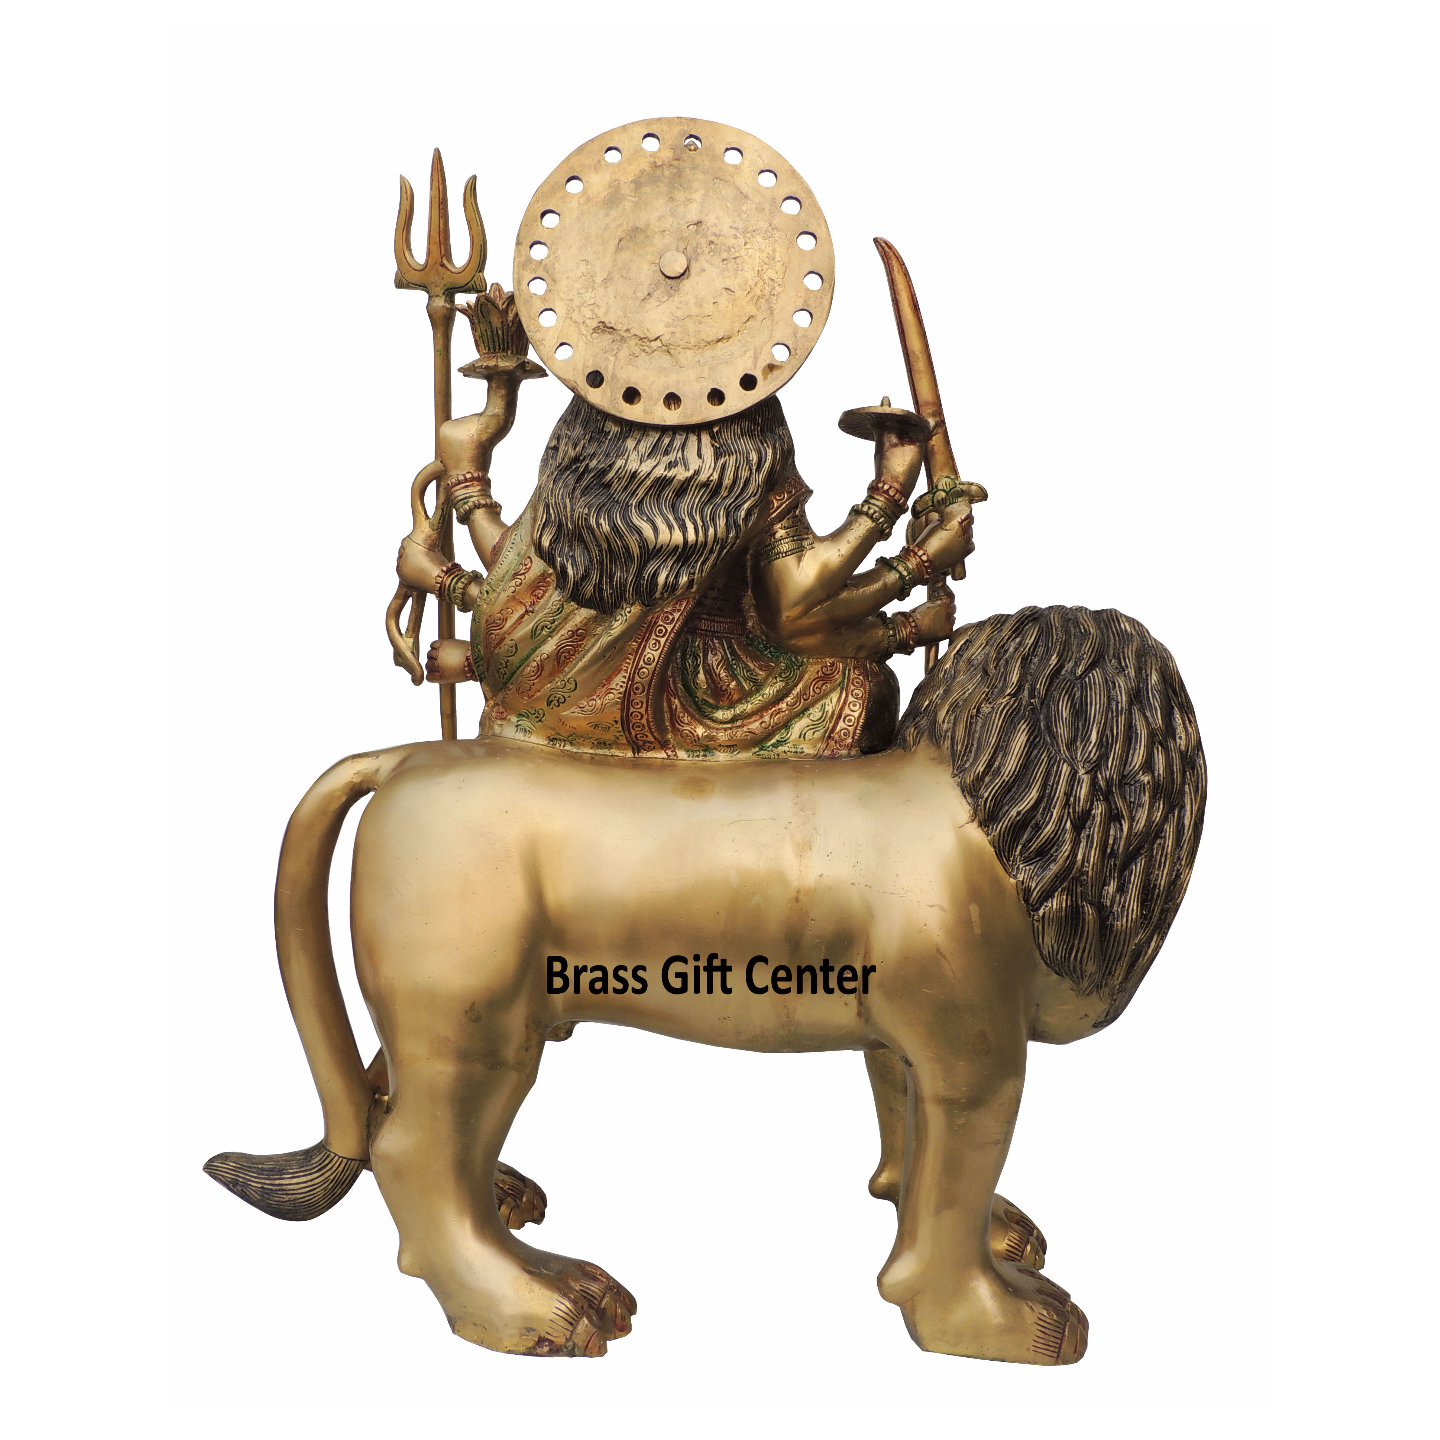 Brass Temple Durga Ji With Color Lacquer Finish - 22.5 Inch (BS1217 A)